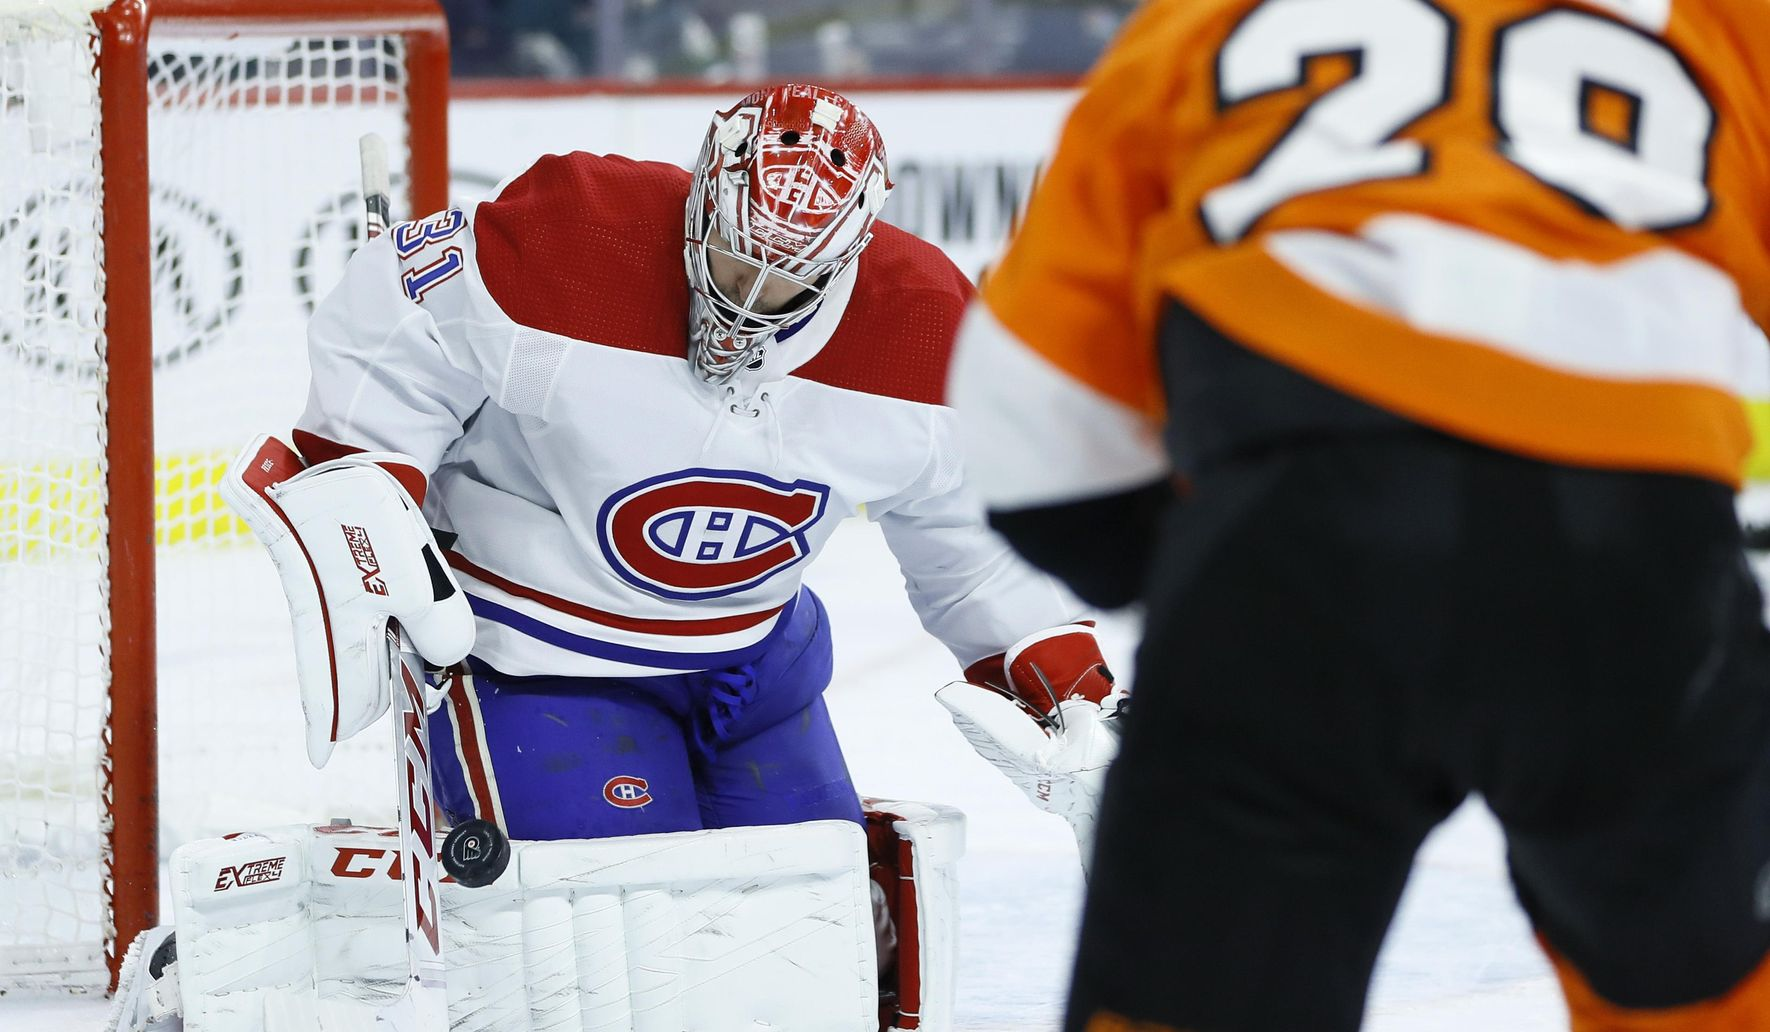 Canadiens_flyers_hockey_79217_c0-159-3813-2382_s1770x1032